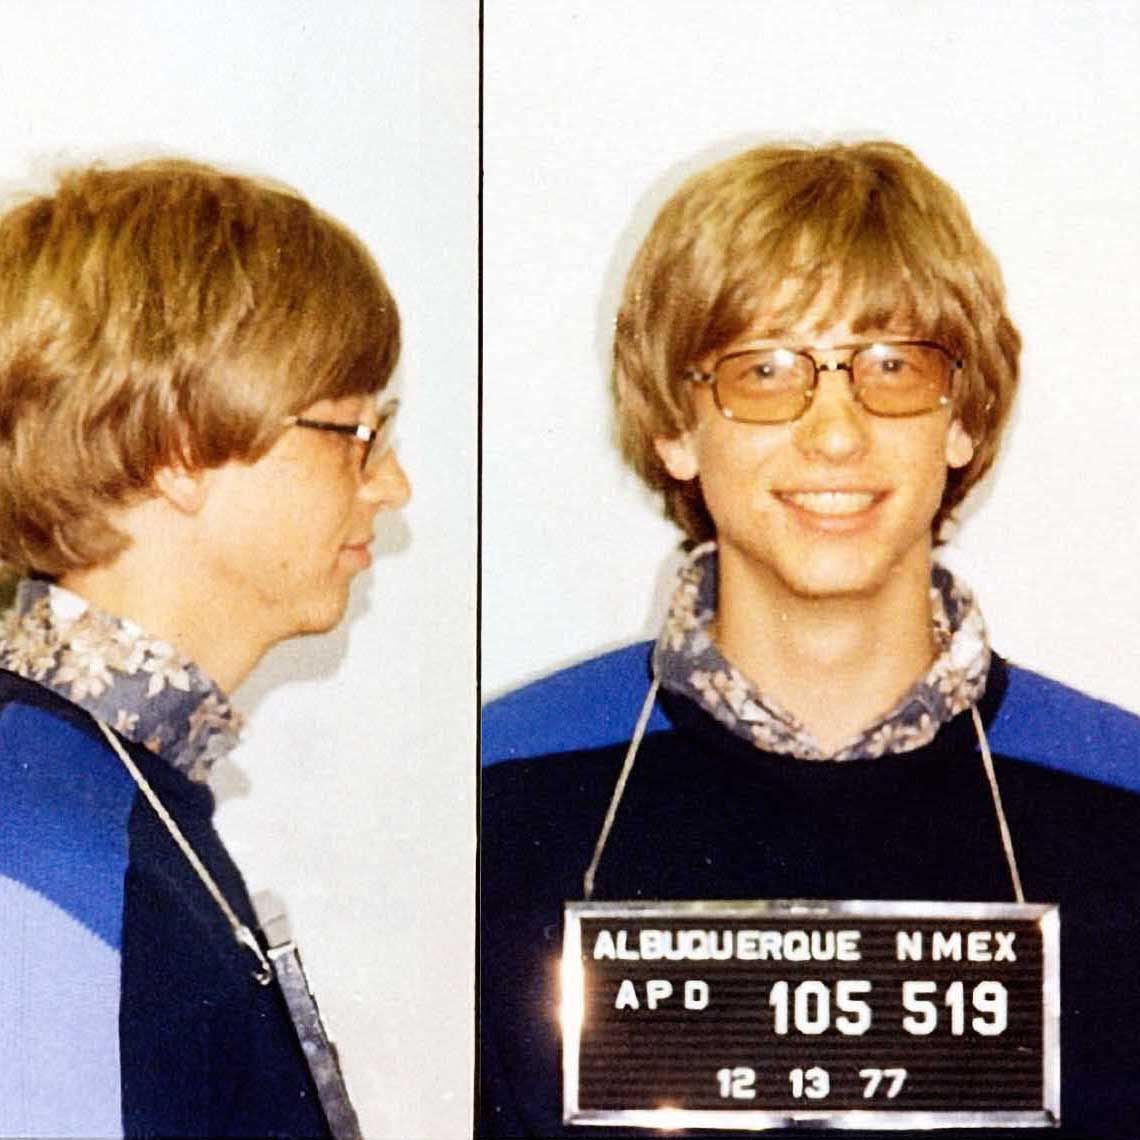 "William Henry Gates III, aka ""Bill Gates"", 1977    Bill Gates mugshot  was taken due to an arrest in Albuquerque in 1977 for driving without a license and running a stop sign. A year later, Gates moved his startup company Microsoft to Seattle and he famously received 3 speeding tickets in his Porsche 911 driving to Washington state. The arrest didn't hold Gates back – Forbes estimates he's  worth $96 billion ."